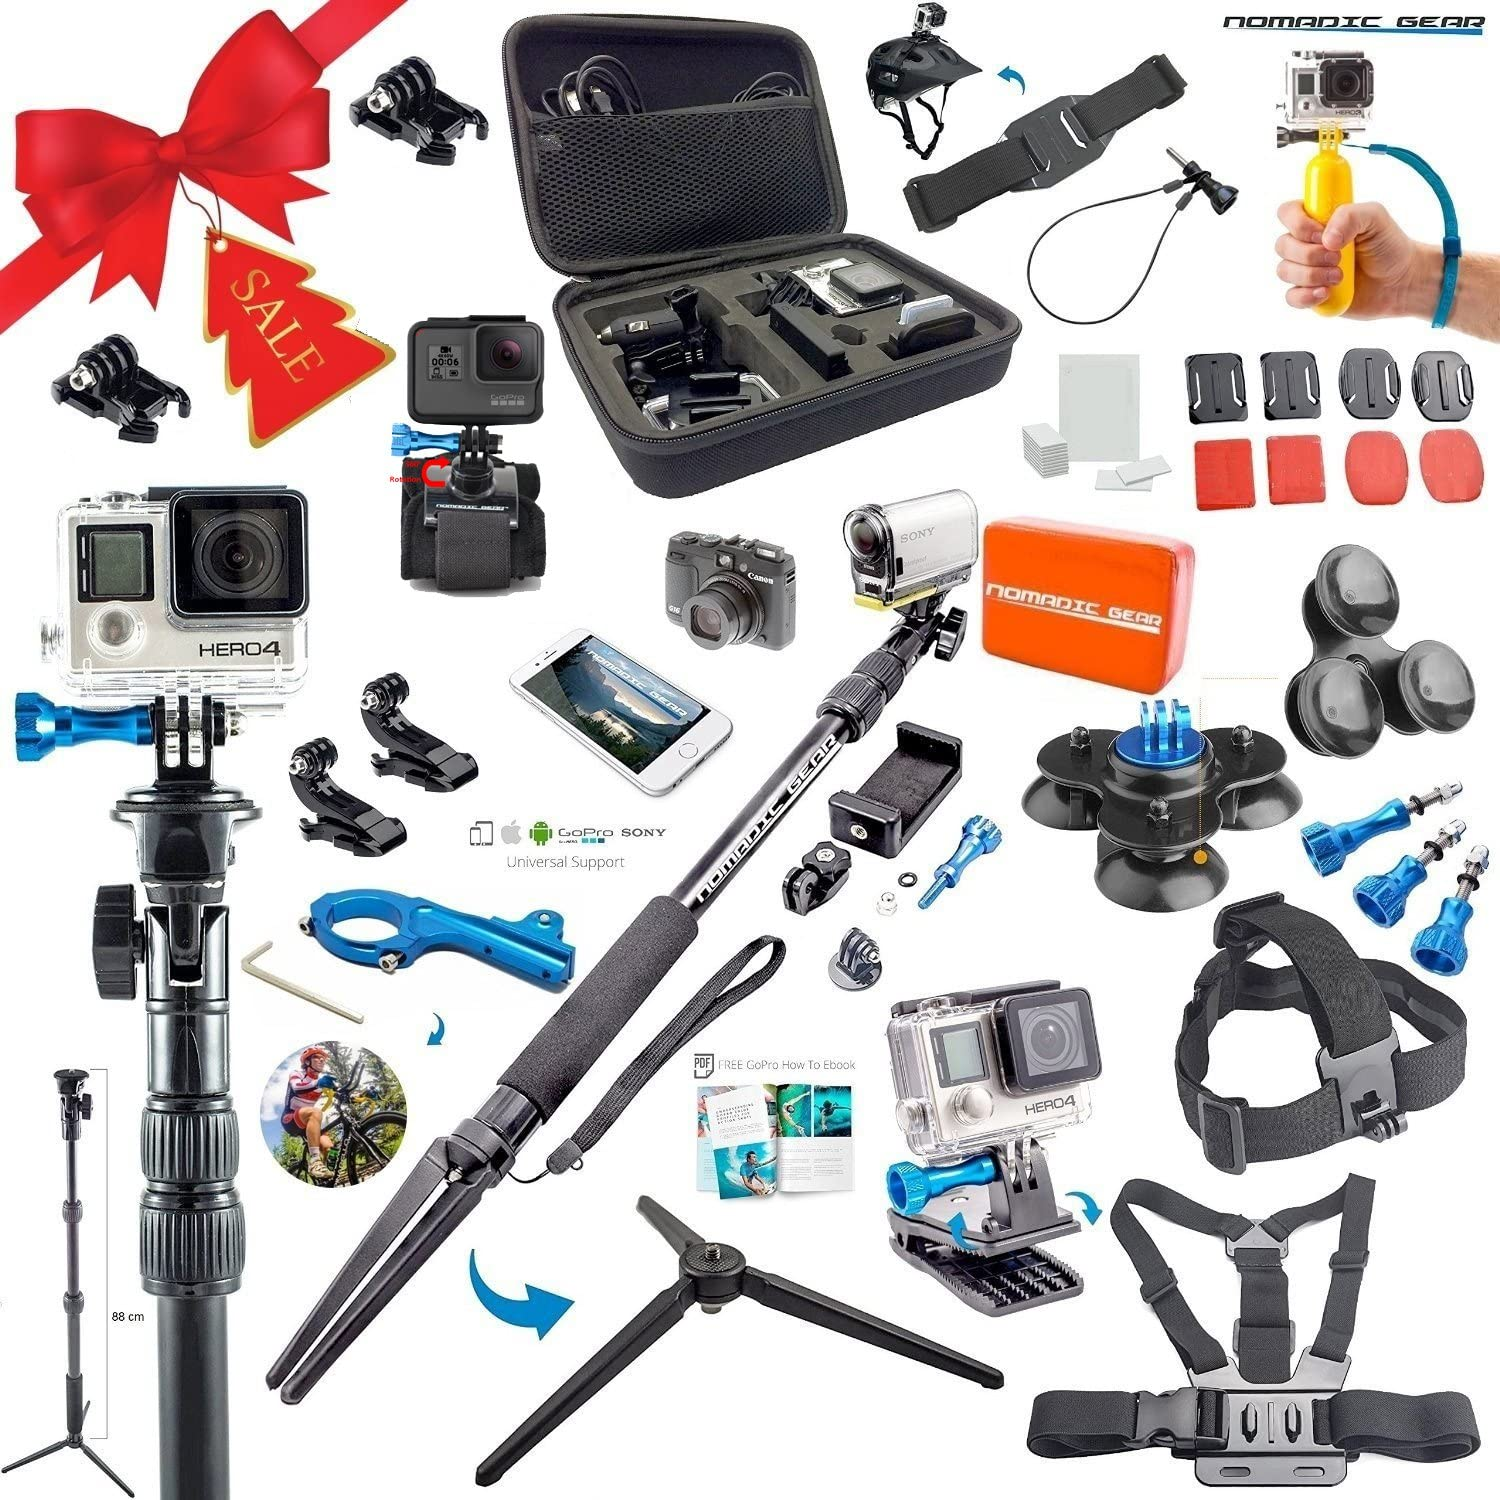 Compatible with The SJCAM SJ4000X Action Camera Navitech 8-in-1 Action Camera Accessories Combo Kit